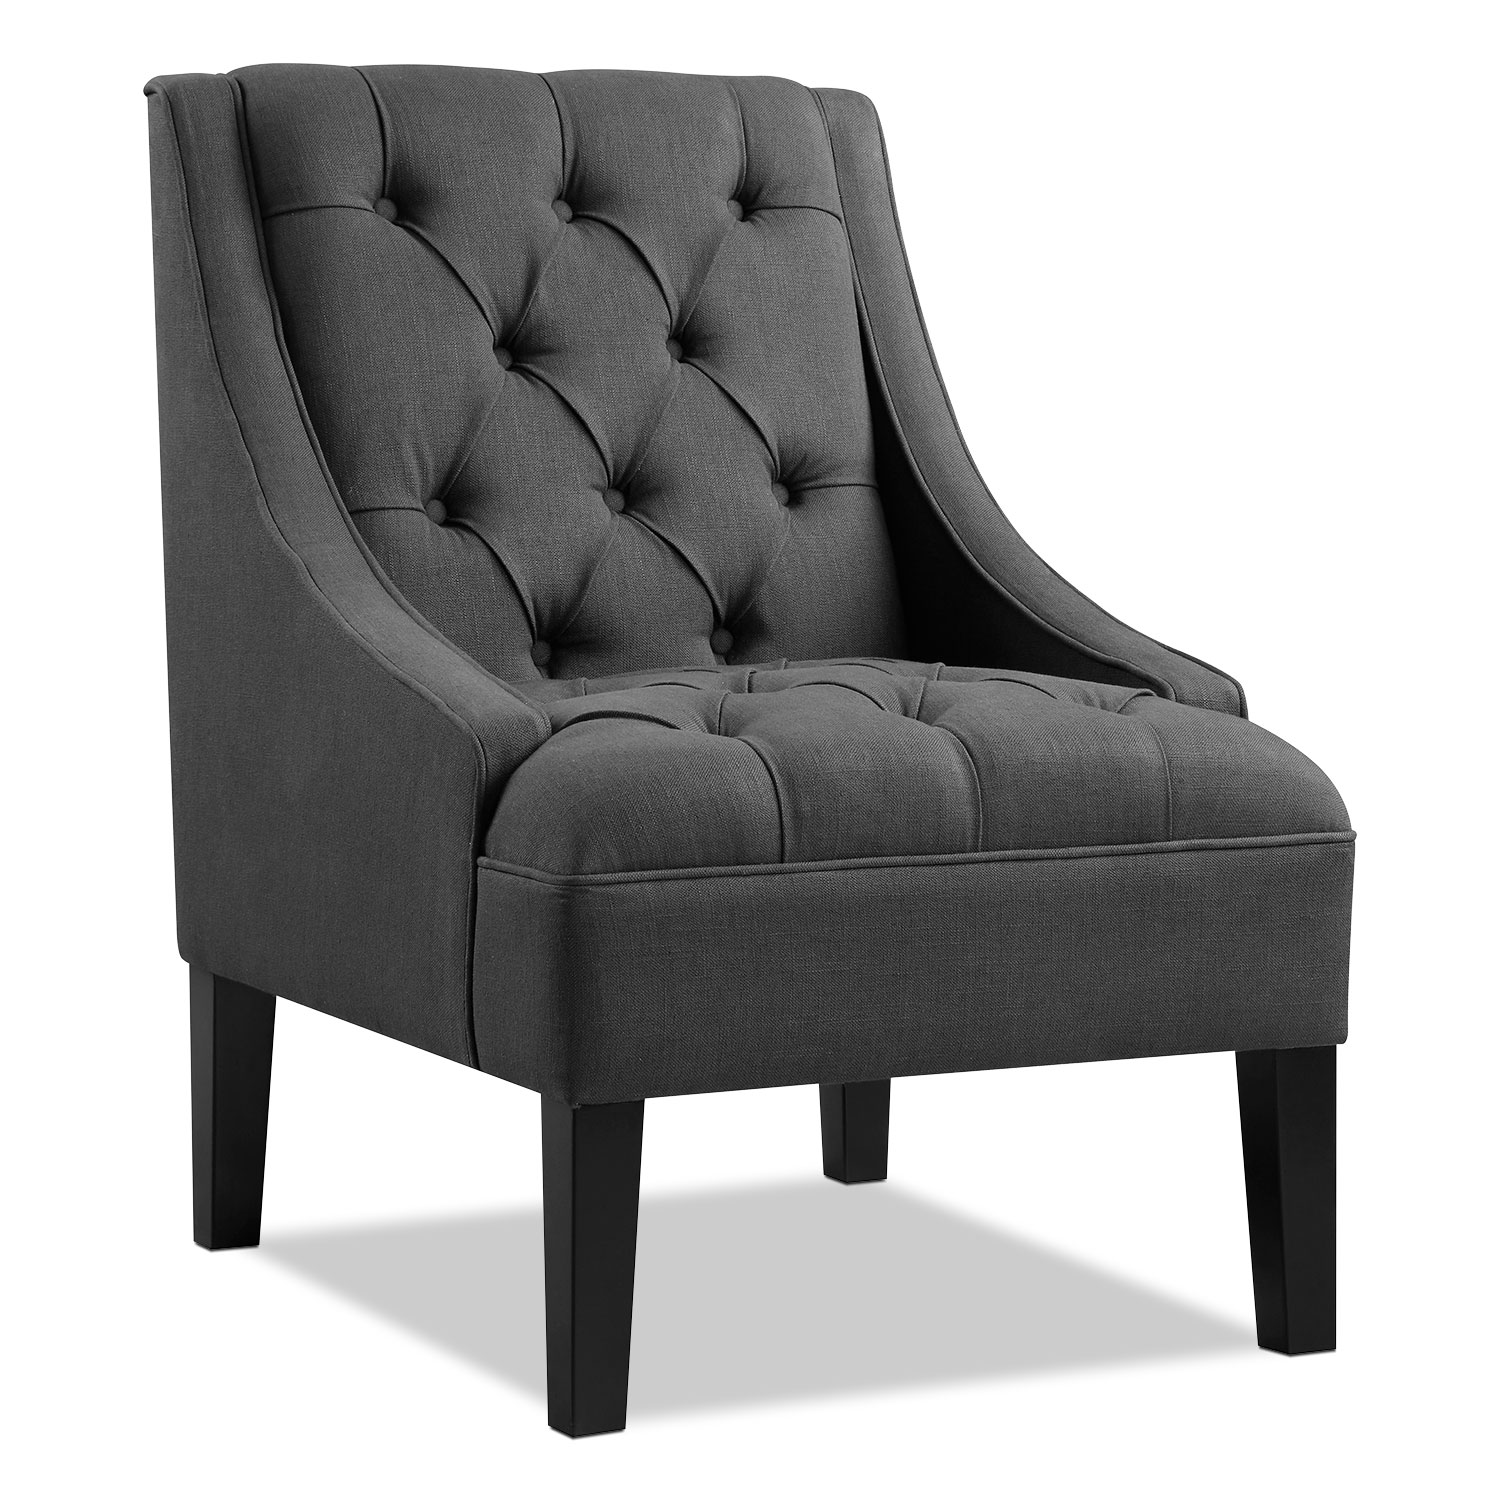 Greylin accent chair gray value city furniture for Occasional chairs for living room